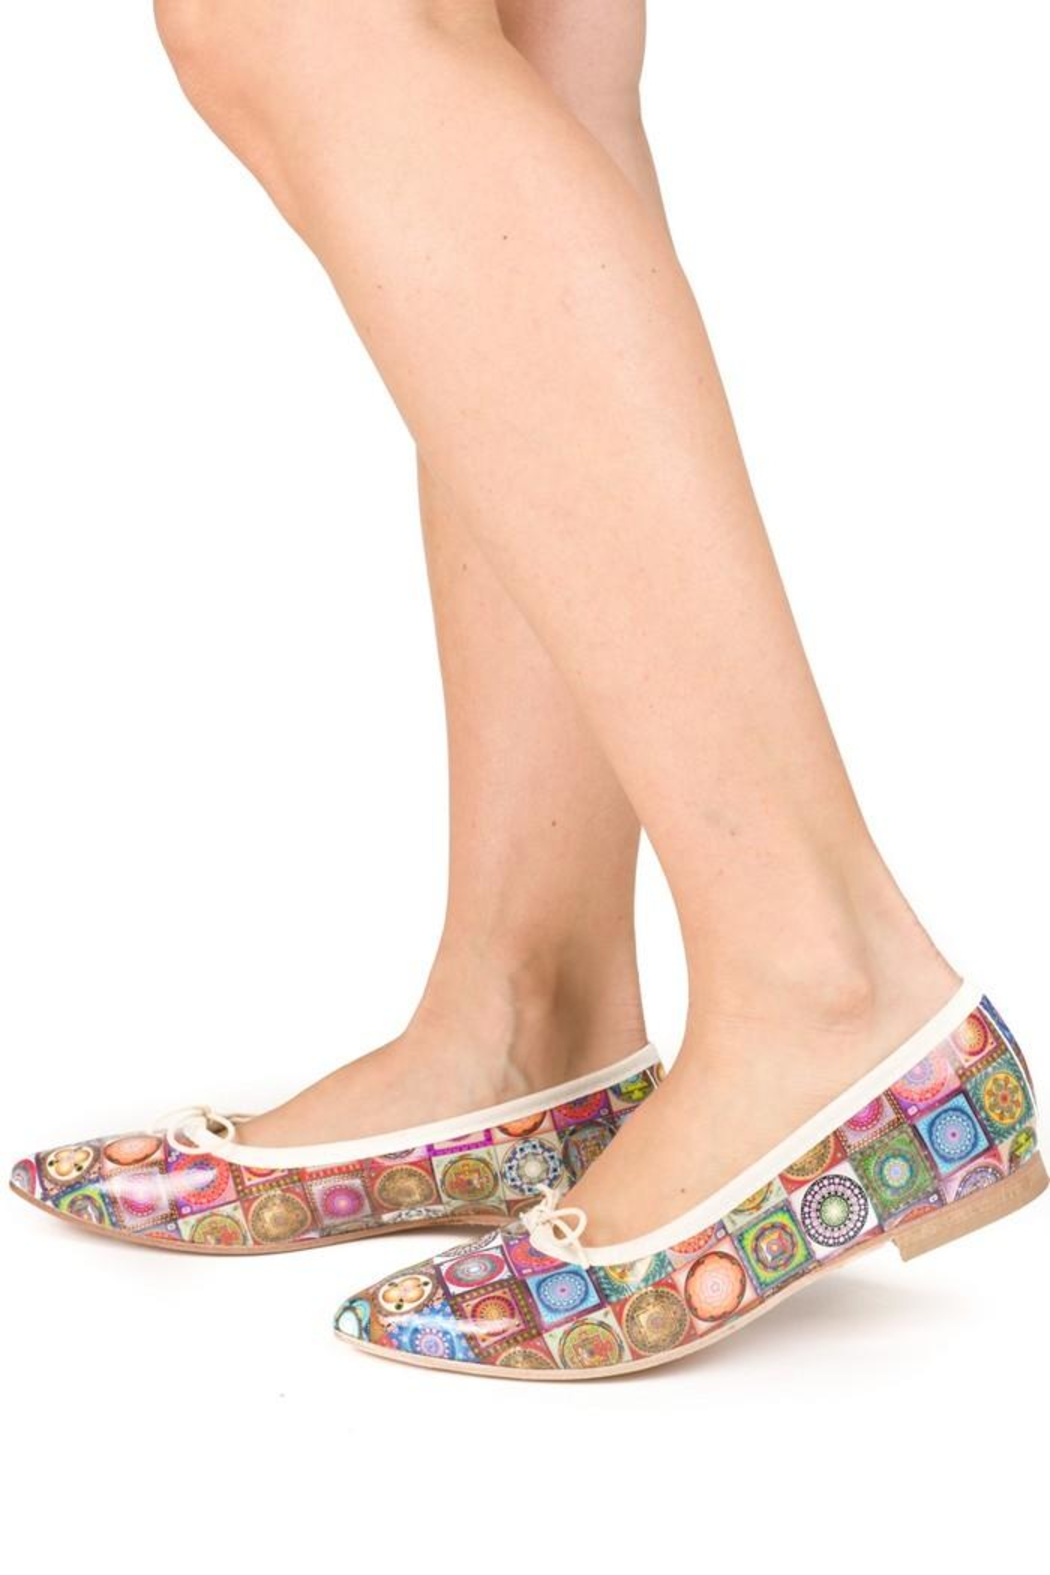 Misano Multicoloured-Tile Ballerina Flats - Back Cropped Image